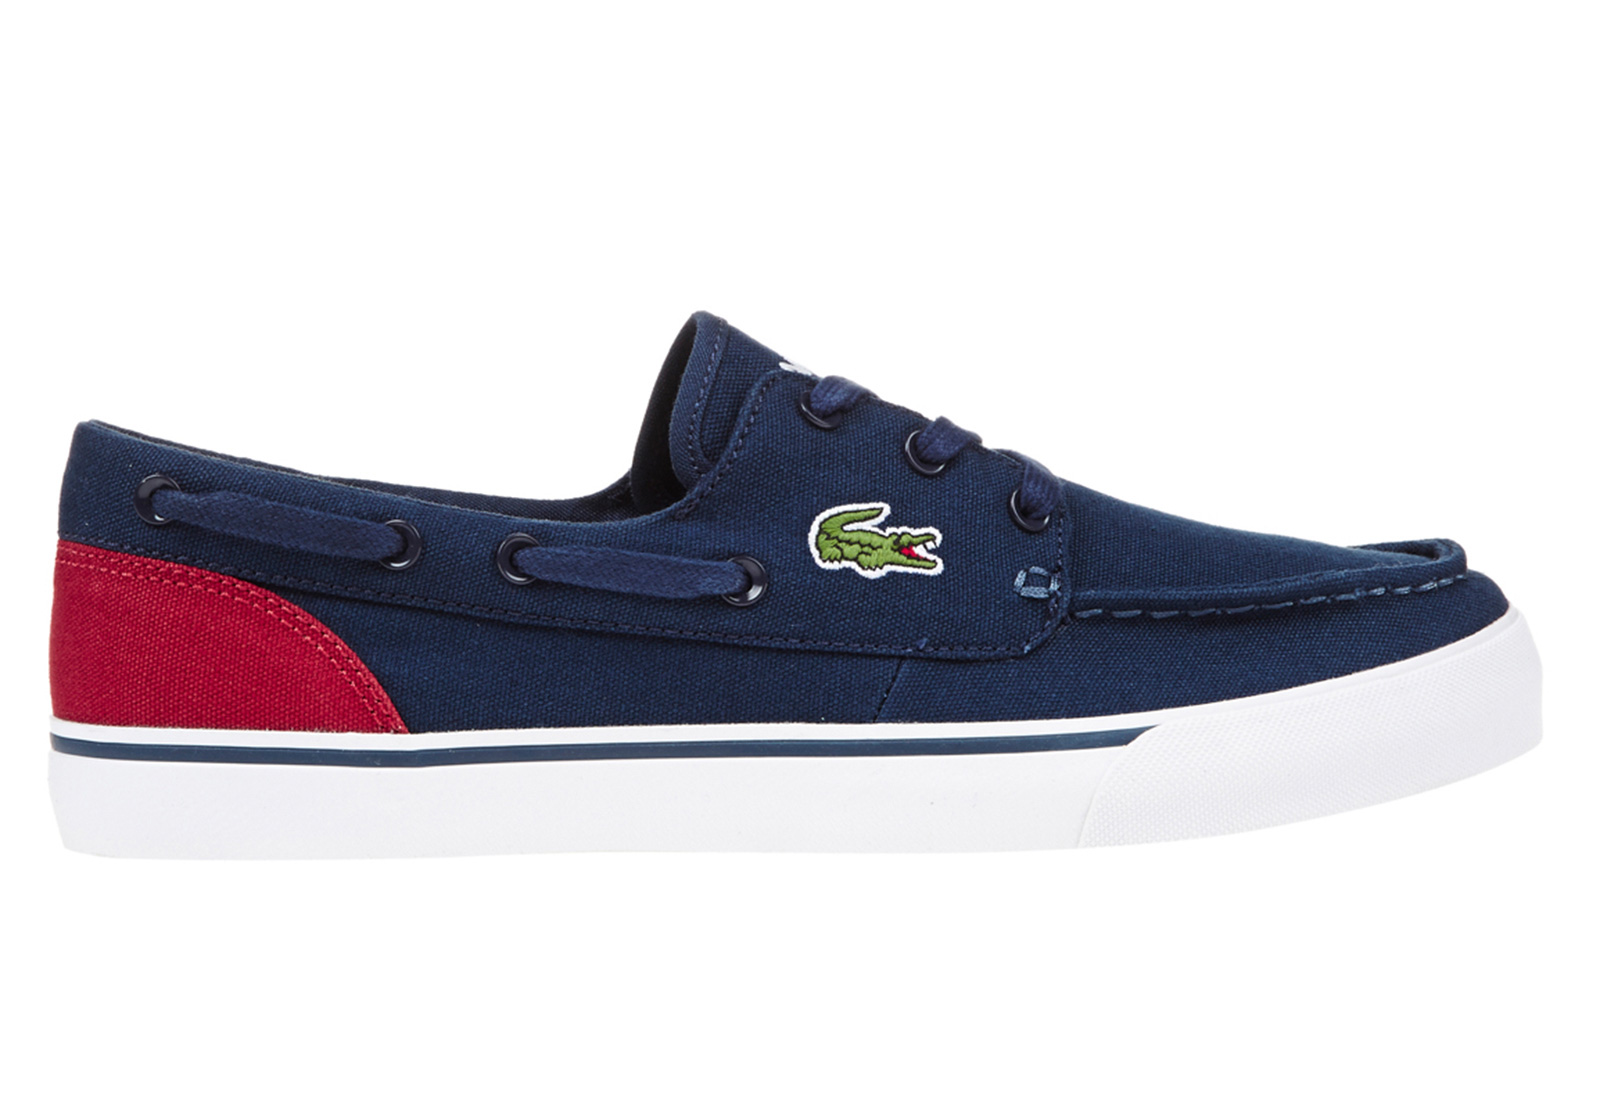 Lacoste Shoes Keel Wd